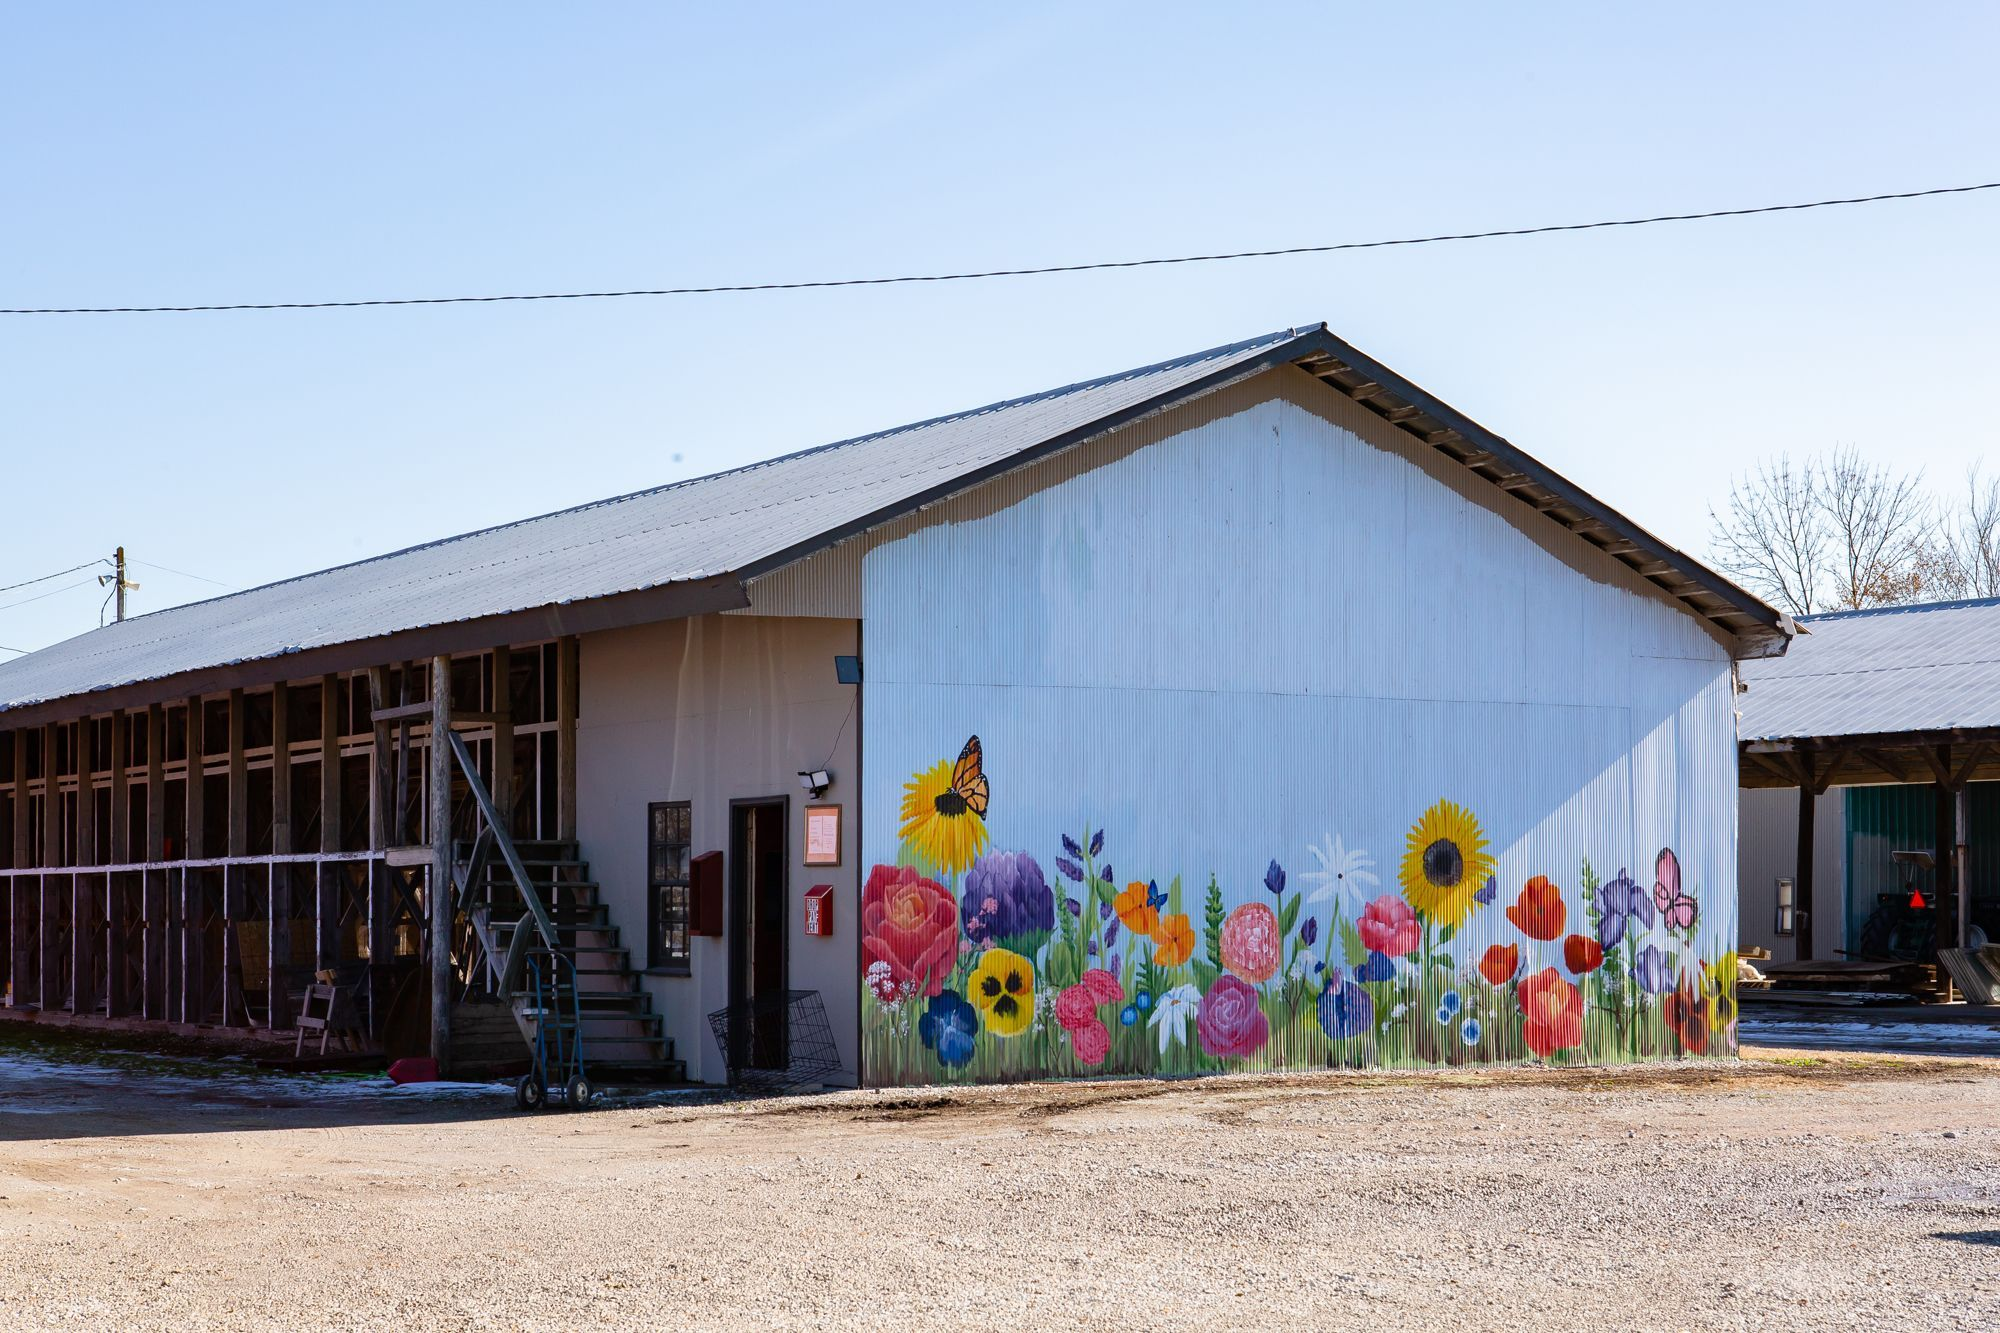 See Inside a OneofaKind Home Made from Grain Bins